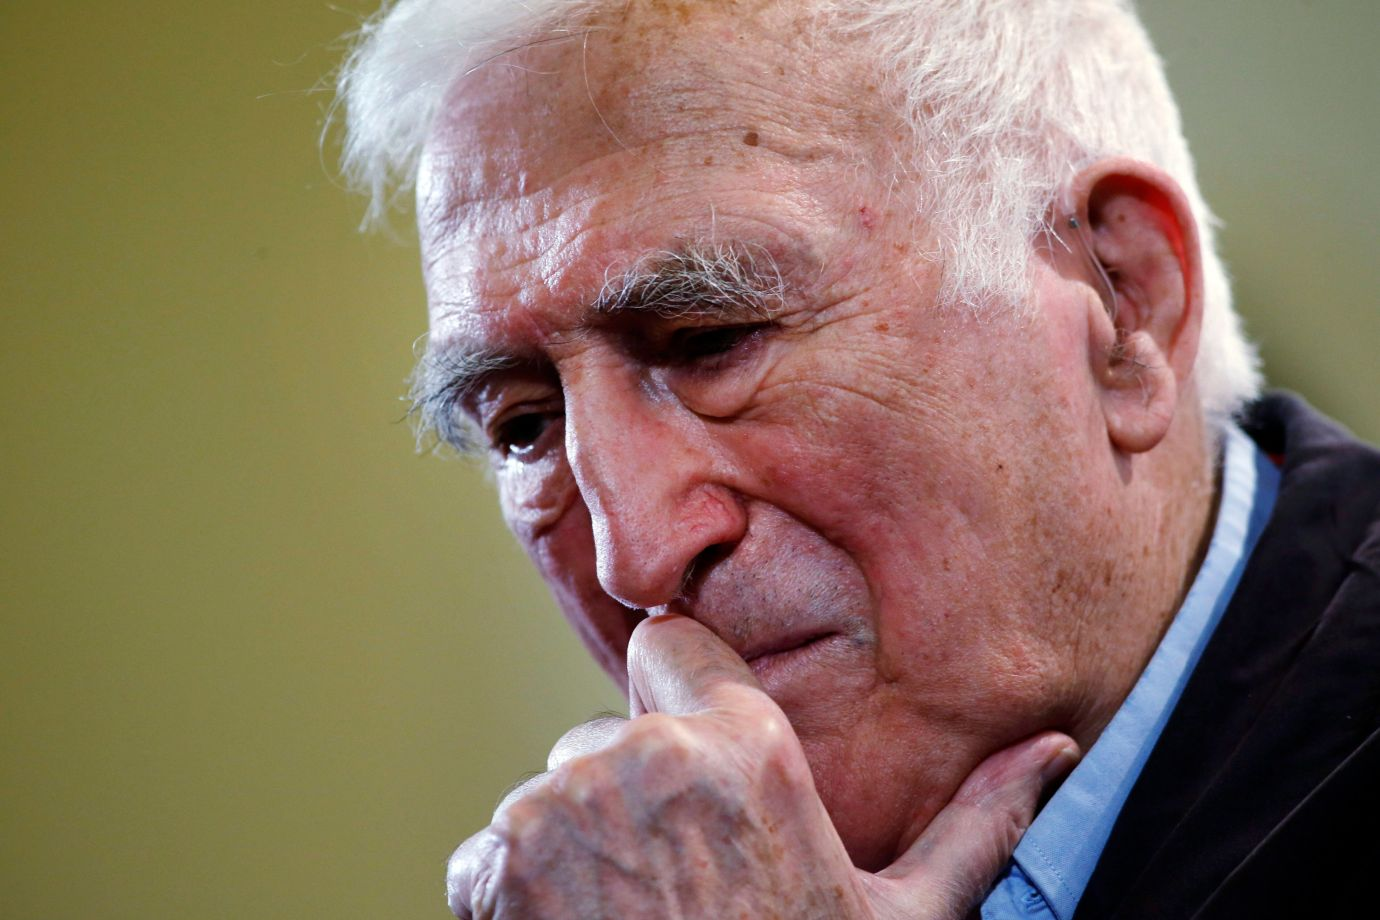 Jean Vanier, the founder of L'ARCHE on March 11, 2015.